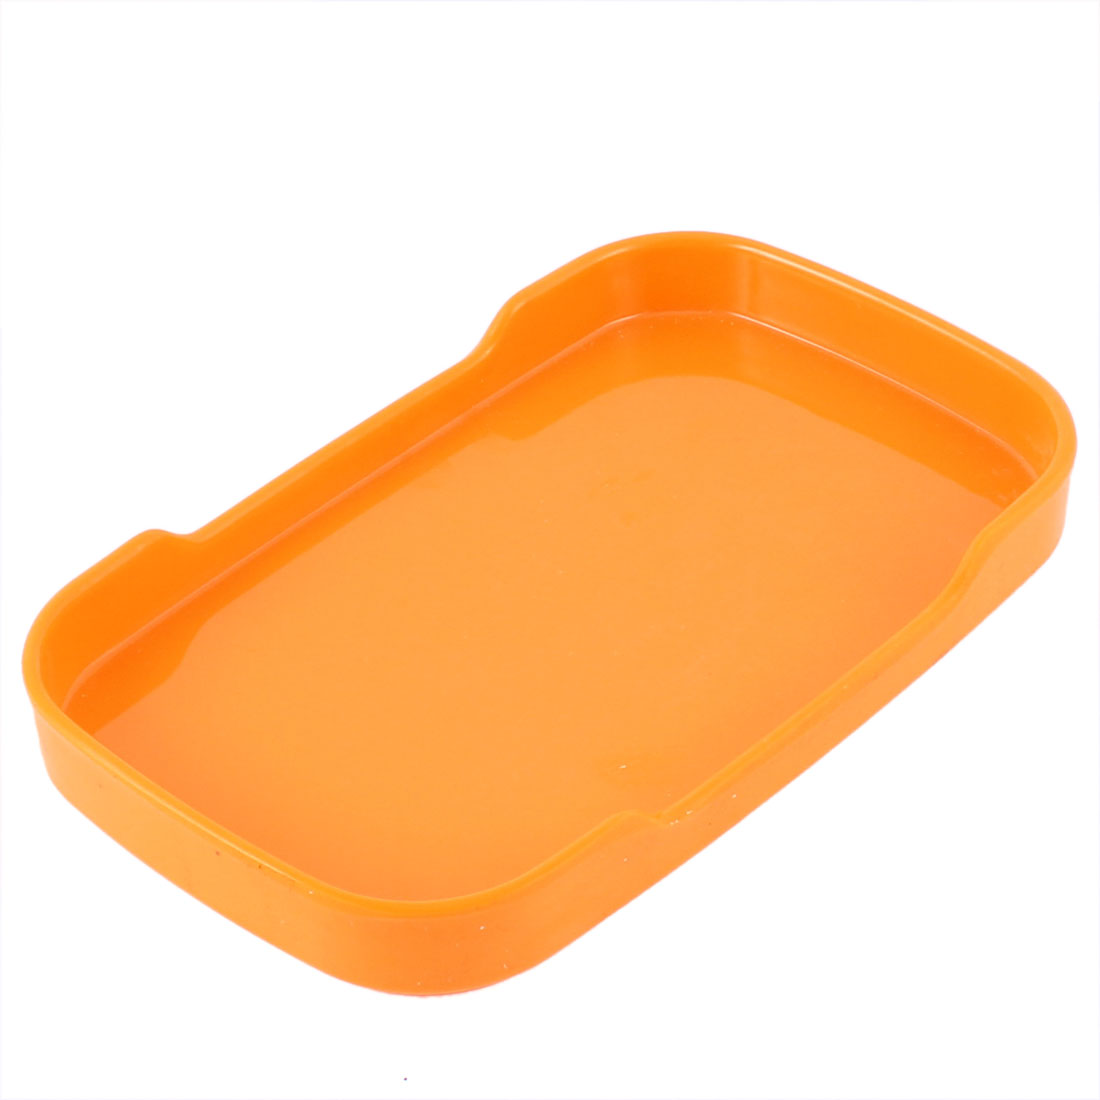 Kitchenware Rectangle Shaped Pastry Appetizer Snack Plate 19cm Long